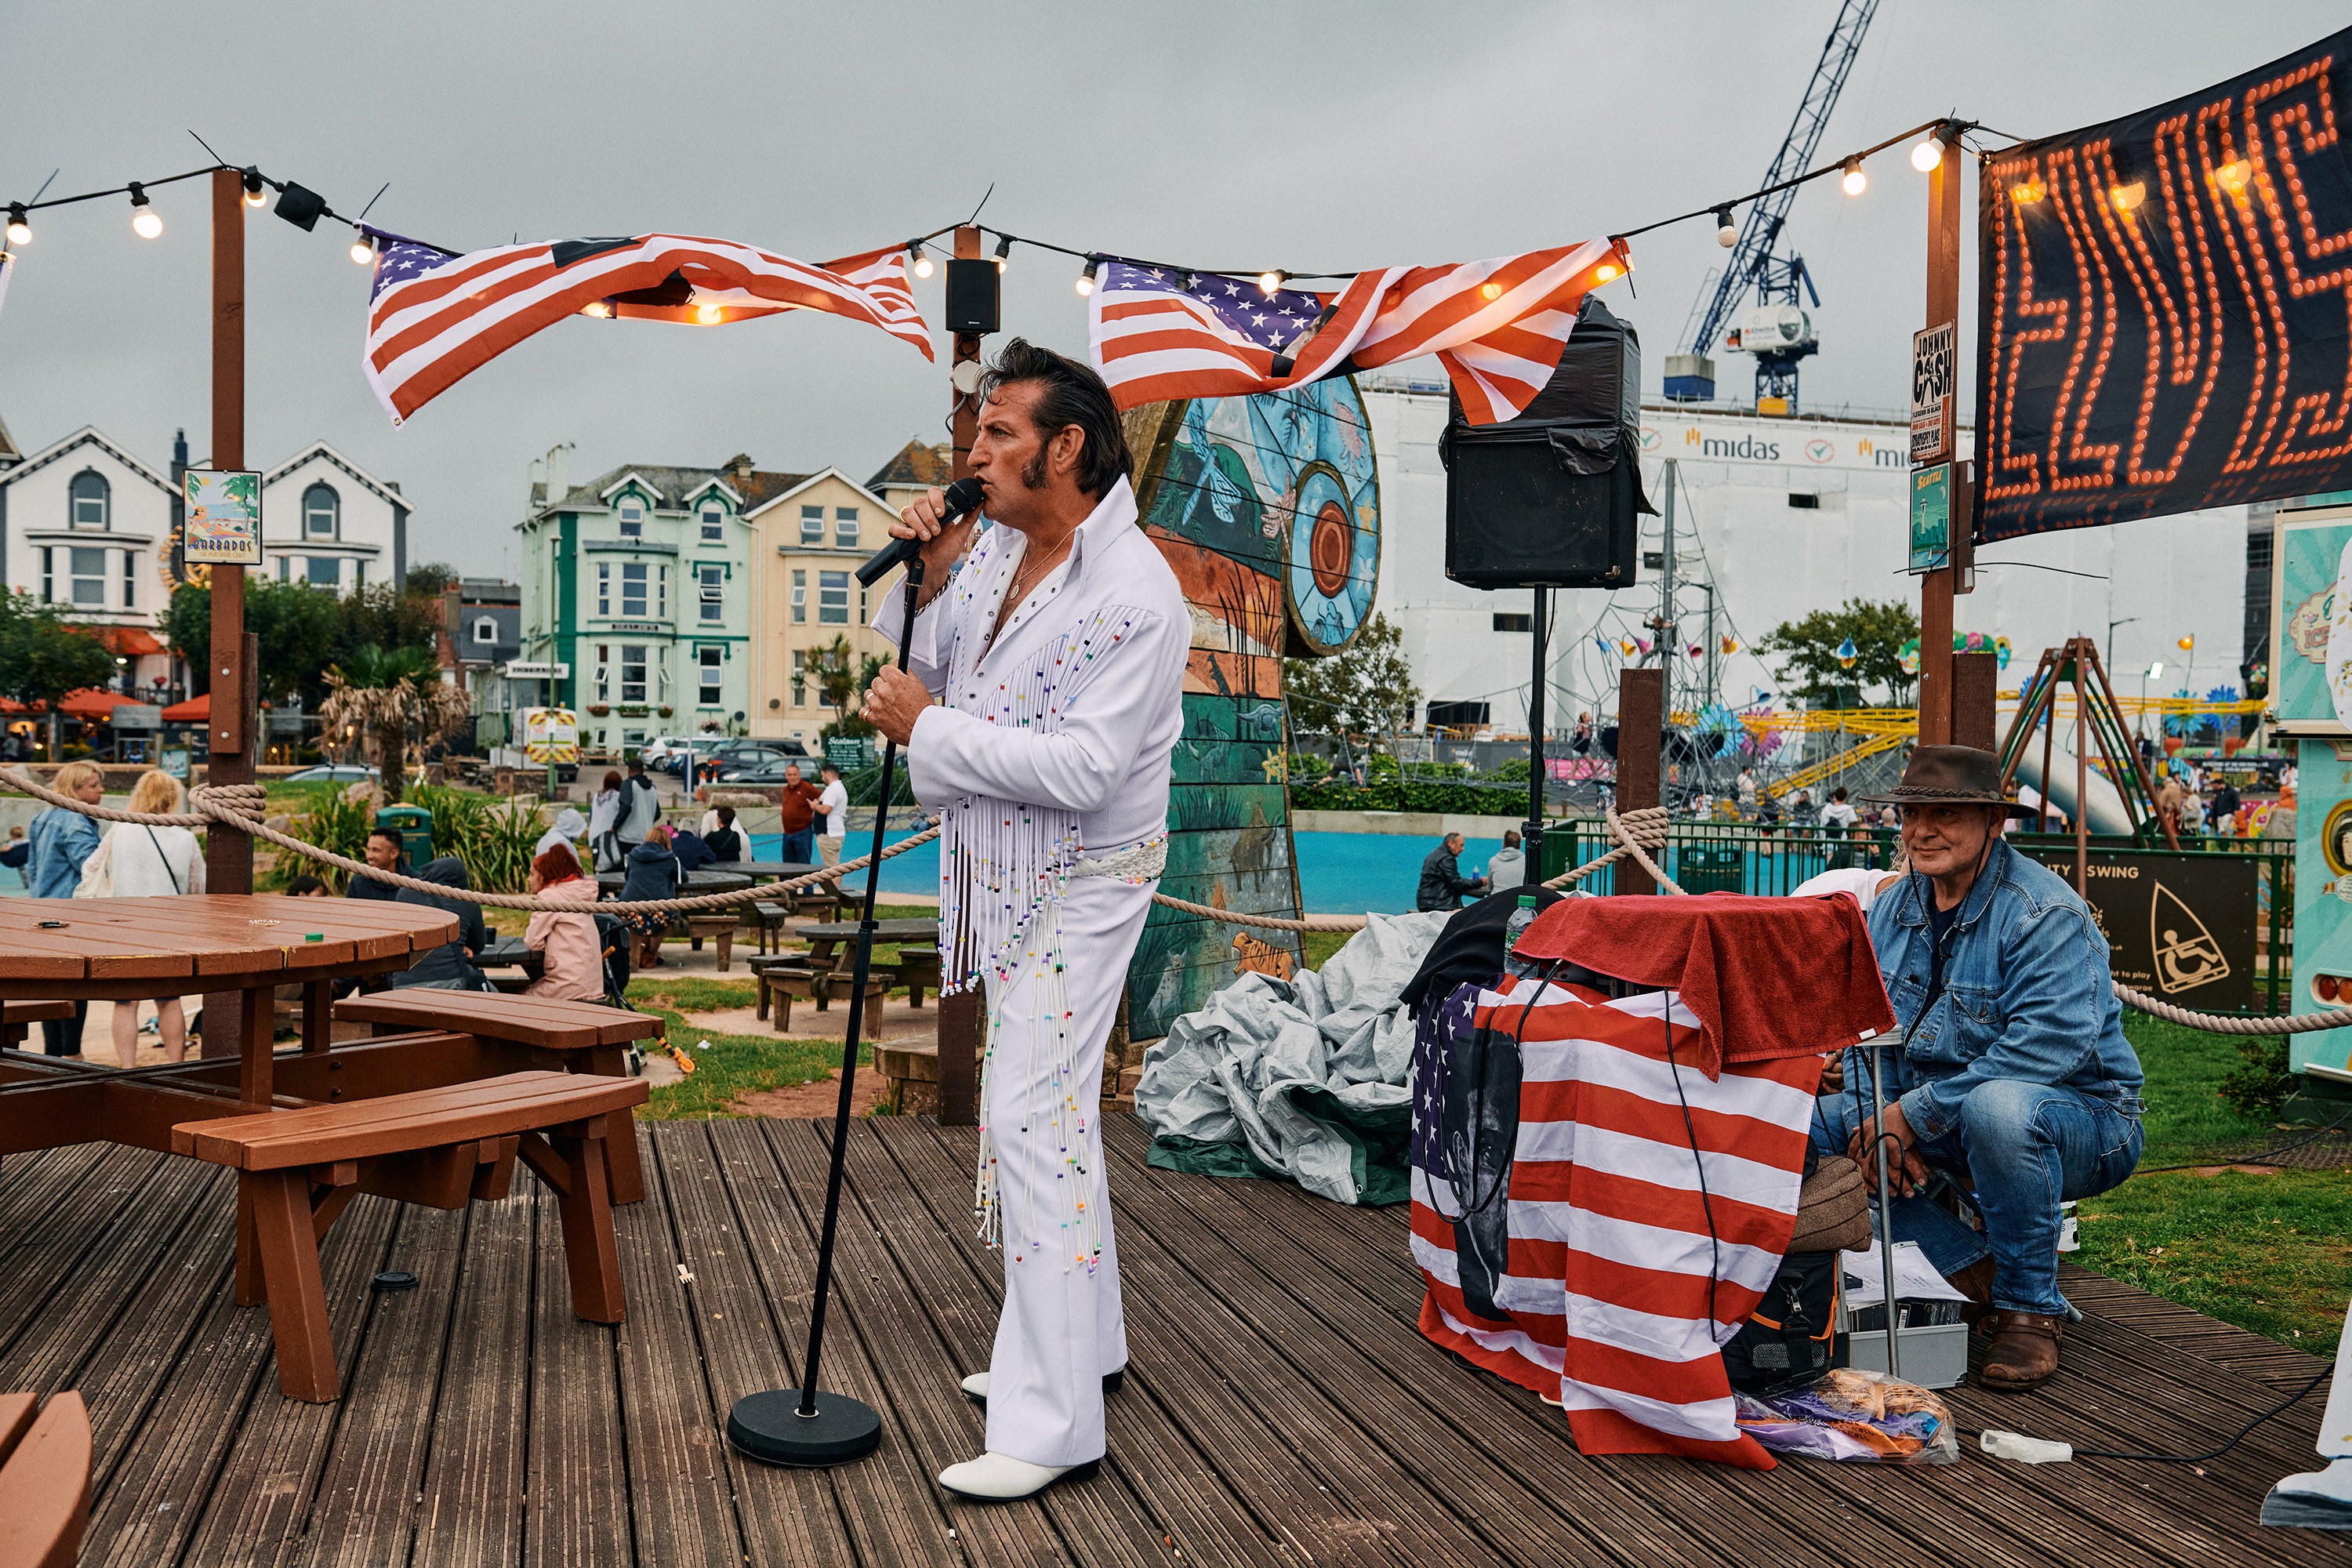 An Elvis impersonator sings on a wooden stage, with a man crouching behind the soundboard behind him